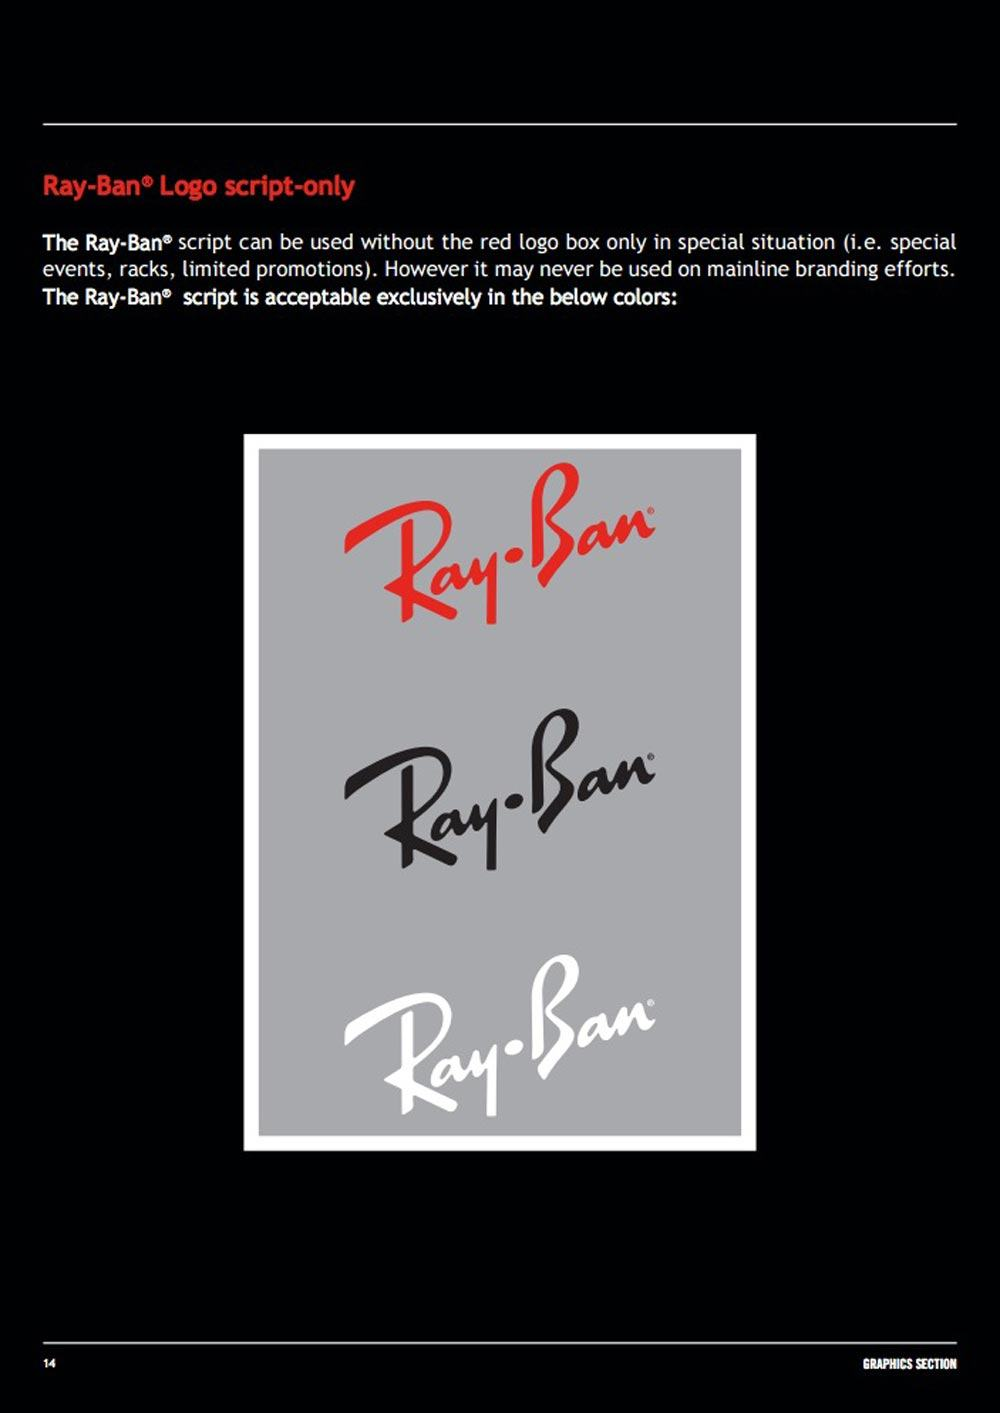 Ray-Ban Brand Guidelines